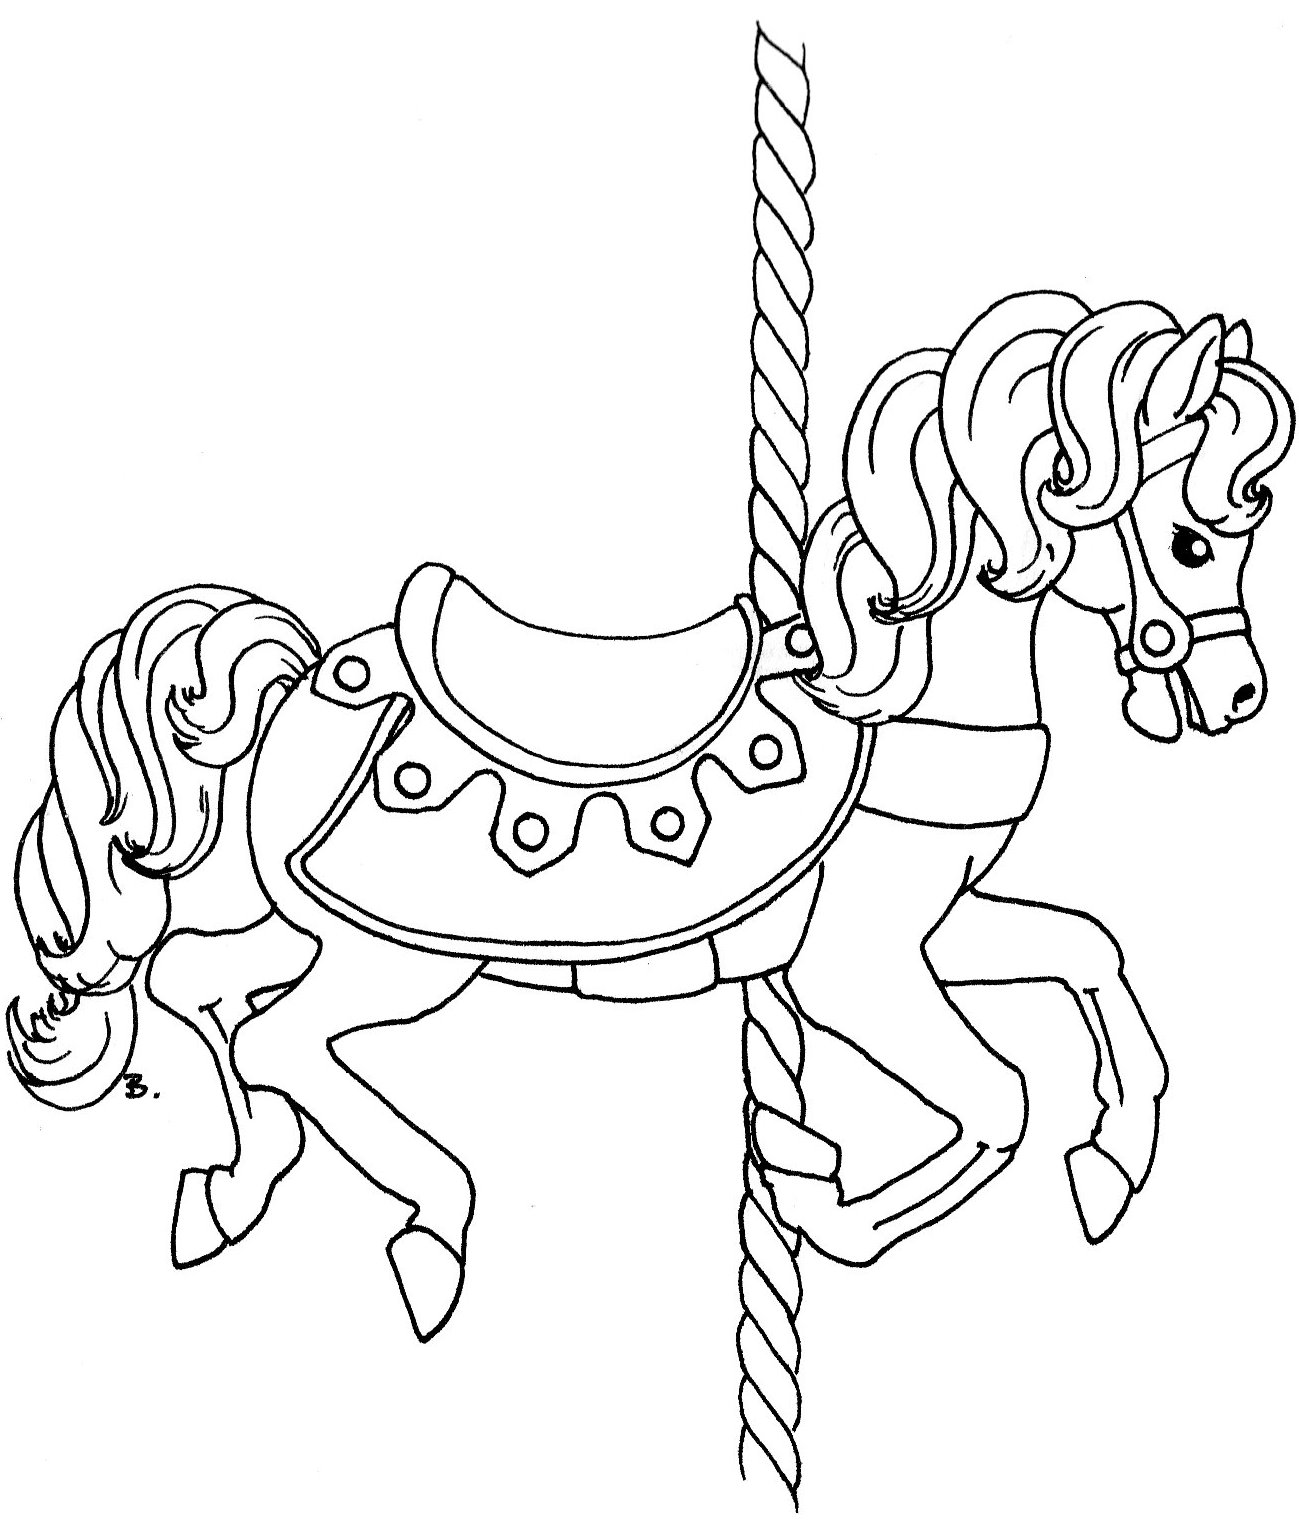 merry go round horse template - beccy 39 s place carousel horse with rug